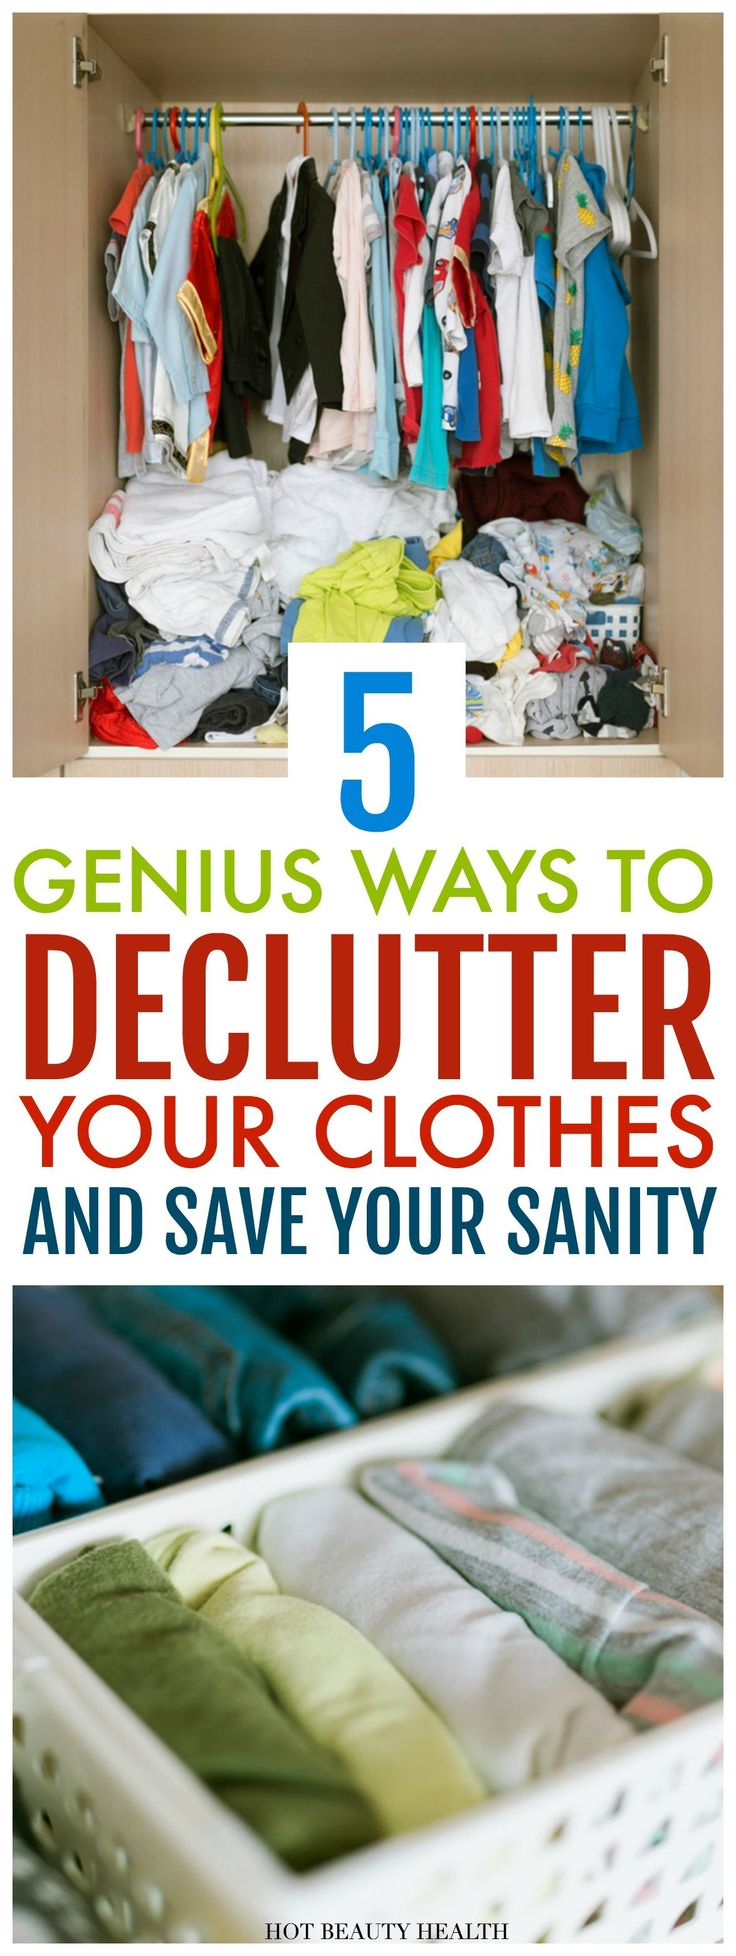 Looking for life-changing organization ideas for your closet? Here are 5 genius ways to declutter your clothes at home and save your sanity. These spring cleaning tips and questions will finally show you how to clean out your closet once and for all. Hot Beauty Health #organize #organizedcloset #declutter #organizingtips #tipstodeclutteryourhome